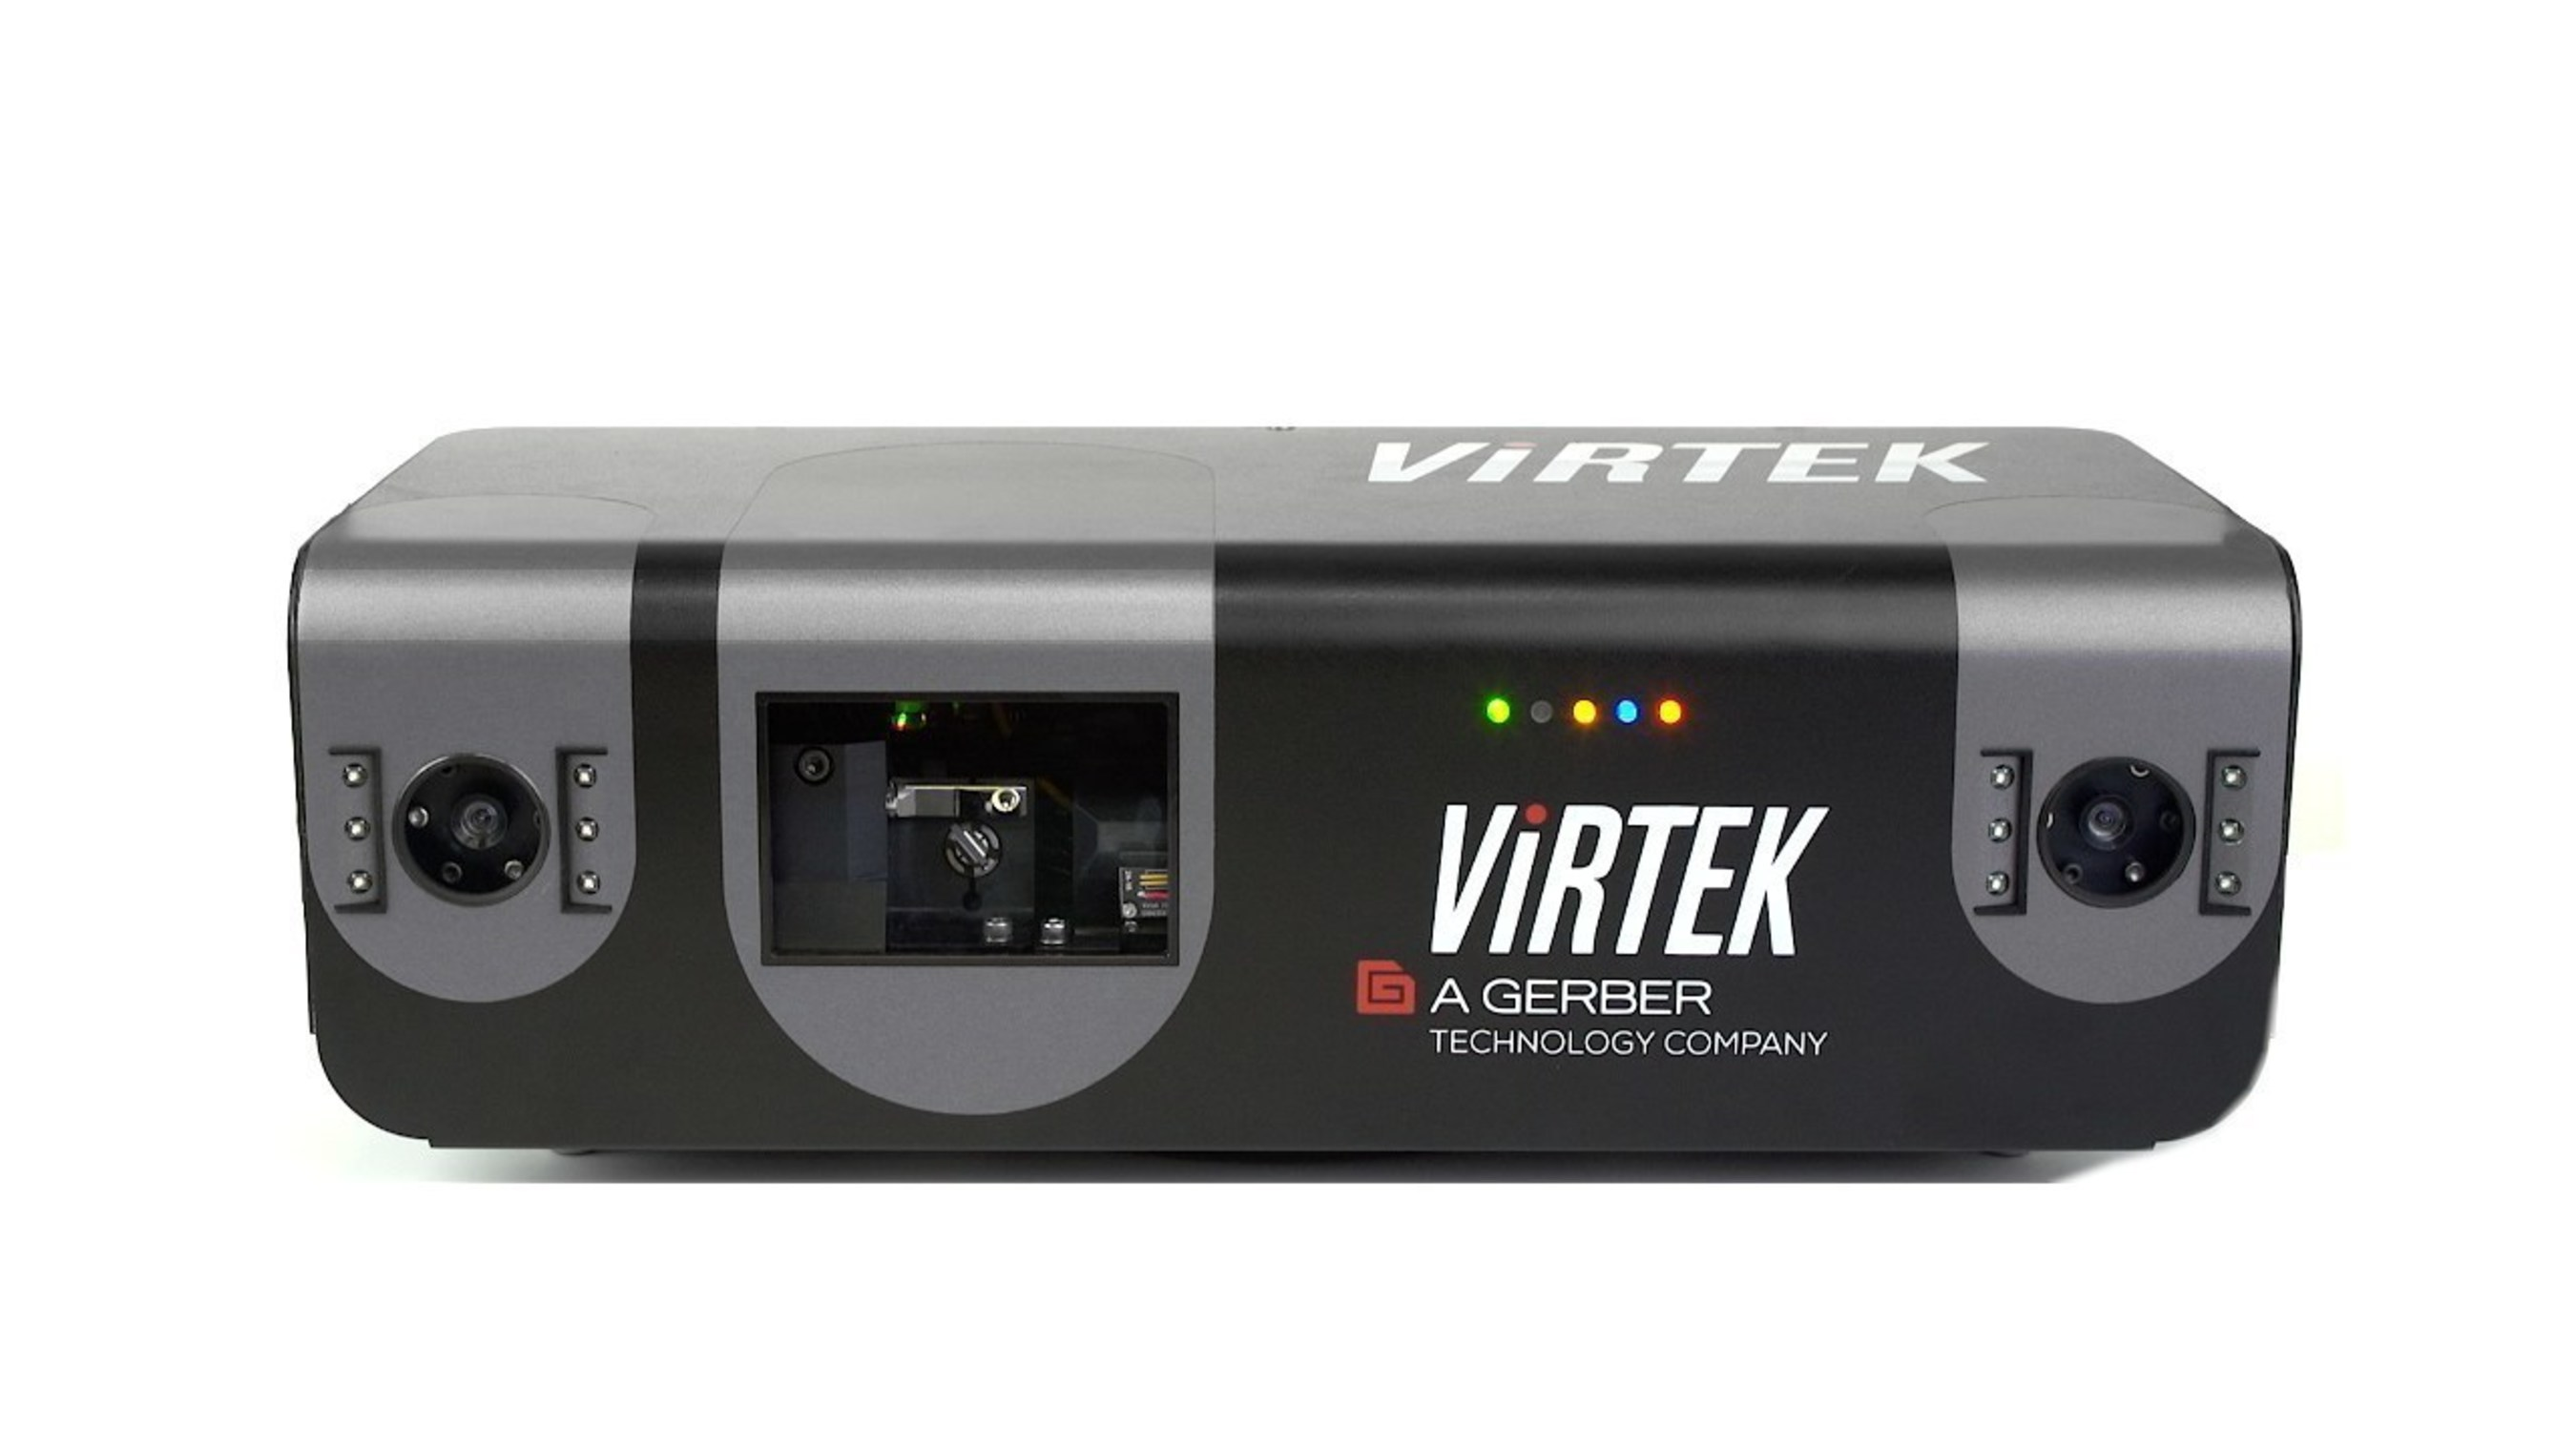 Virtek Vision Positioning System (VPS) is smaller and has the ability to quickly calibrate reducing set-up times, which will revolutionize processes in the composite and aerospace markets.